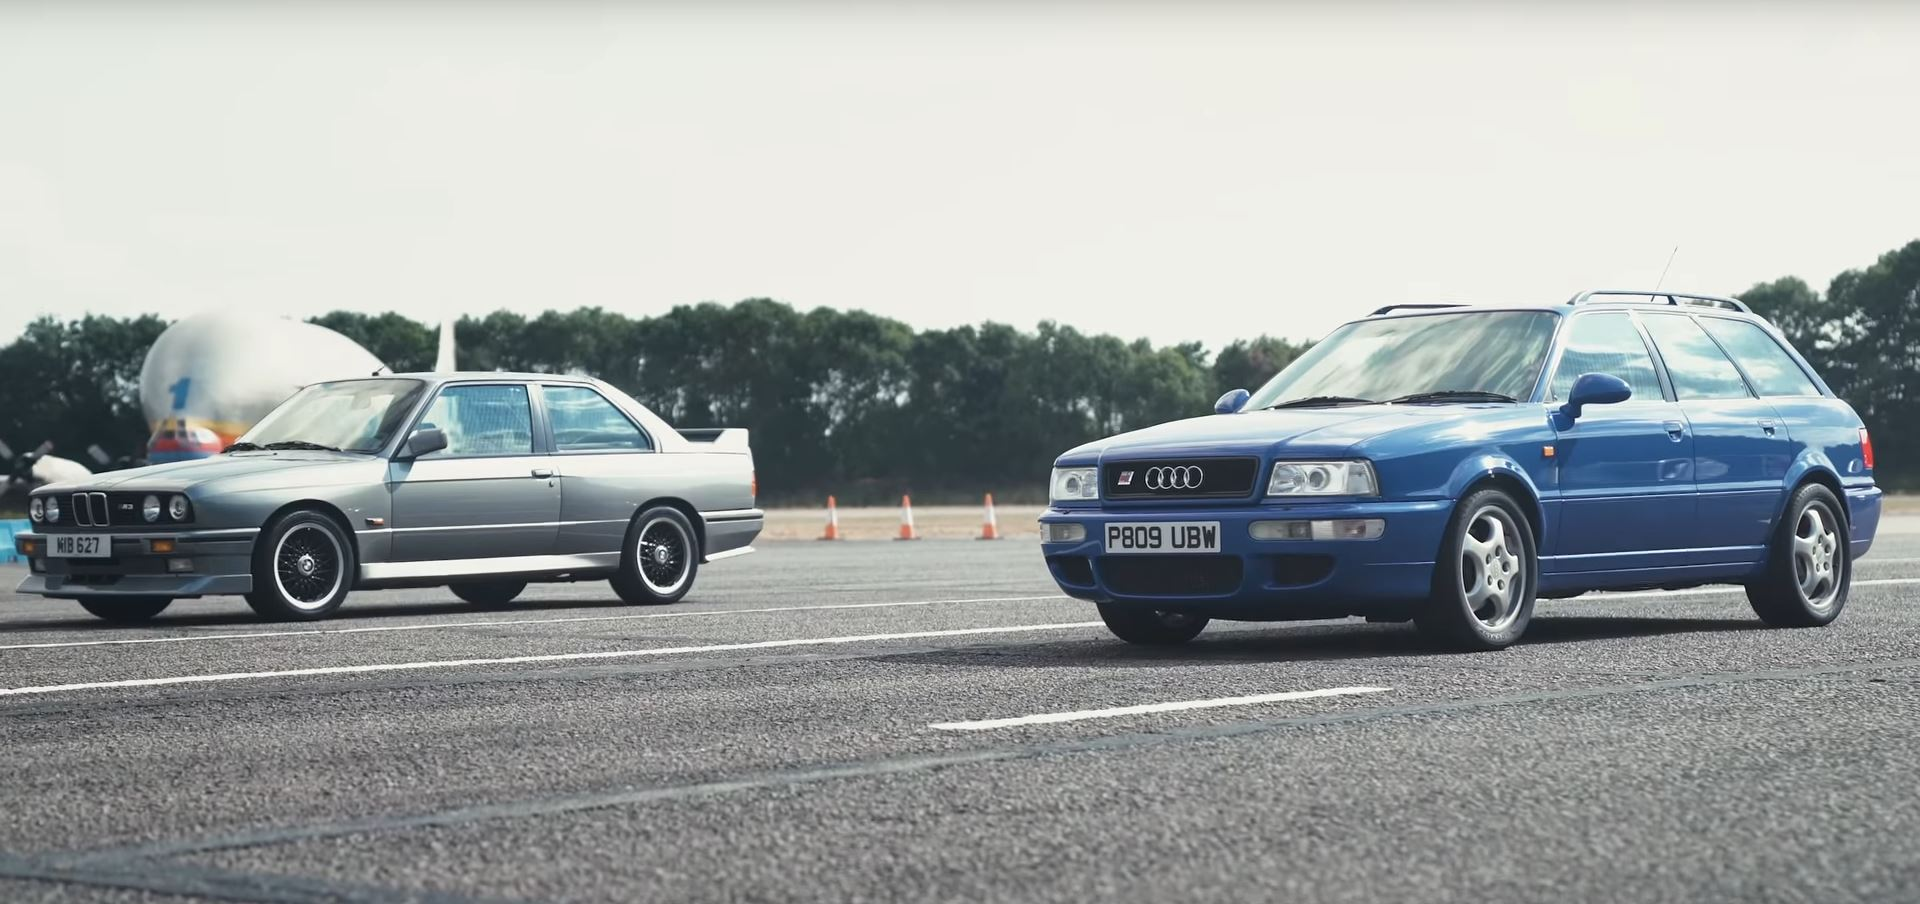 Bmw E30 M3 Vs Audi Rs2 Drag Race Is A Very Retro Drag Race